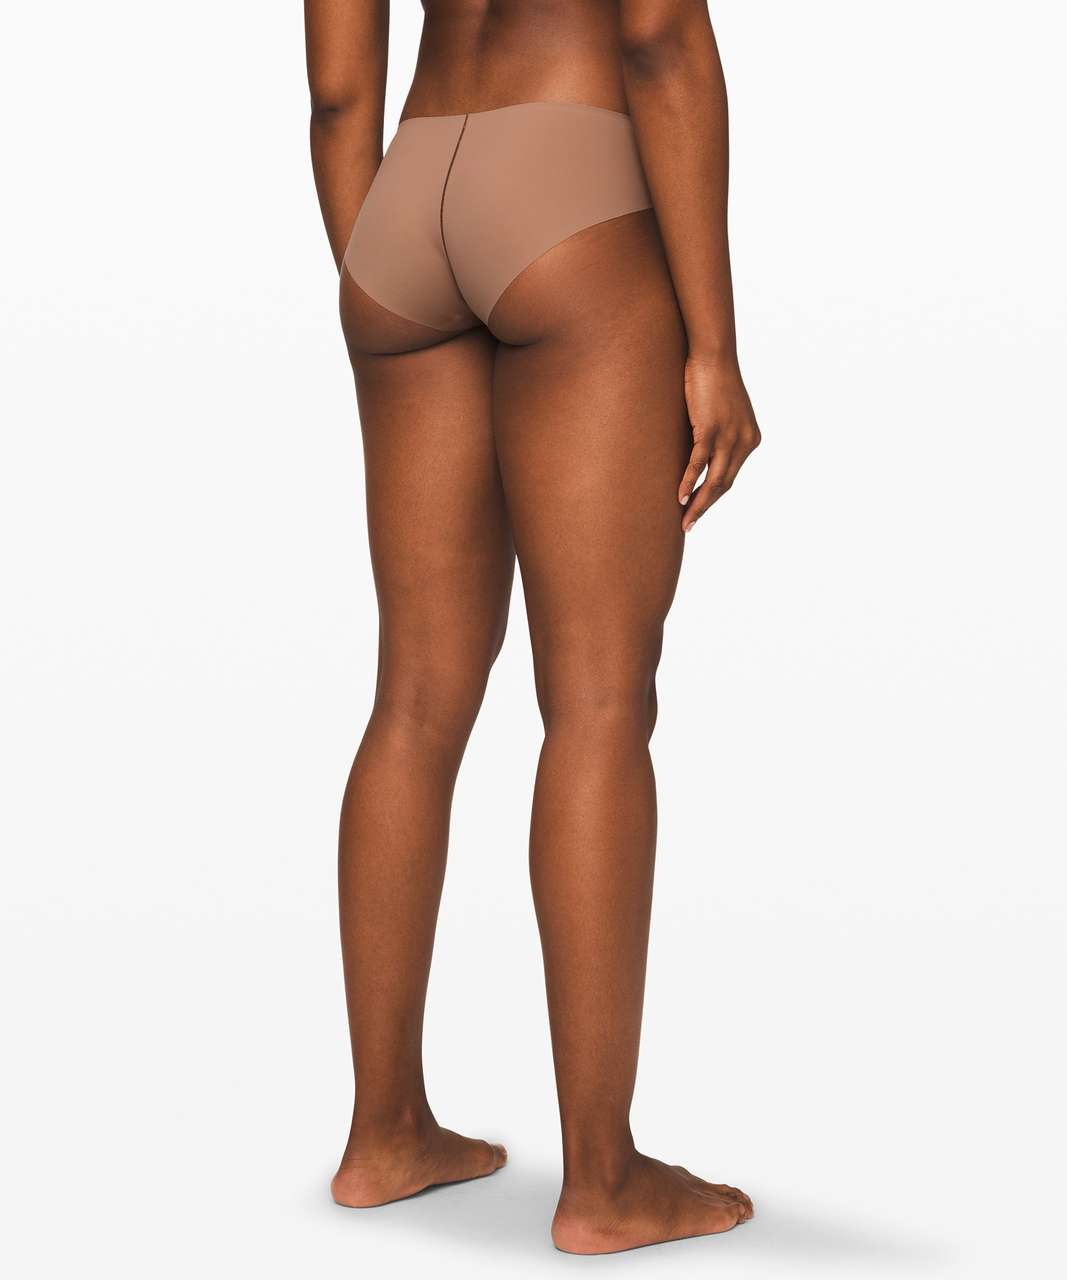 Lululemon Namastay Put Hipster - Dusty Bronze (First Release)